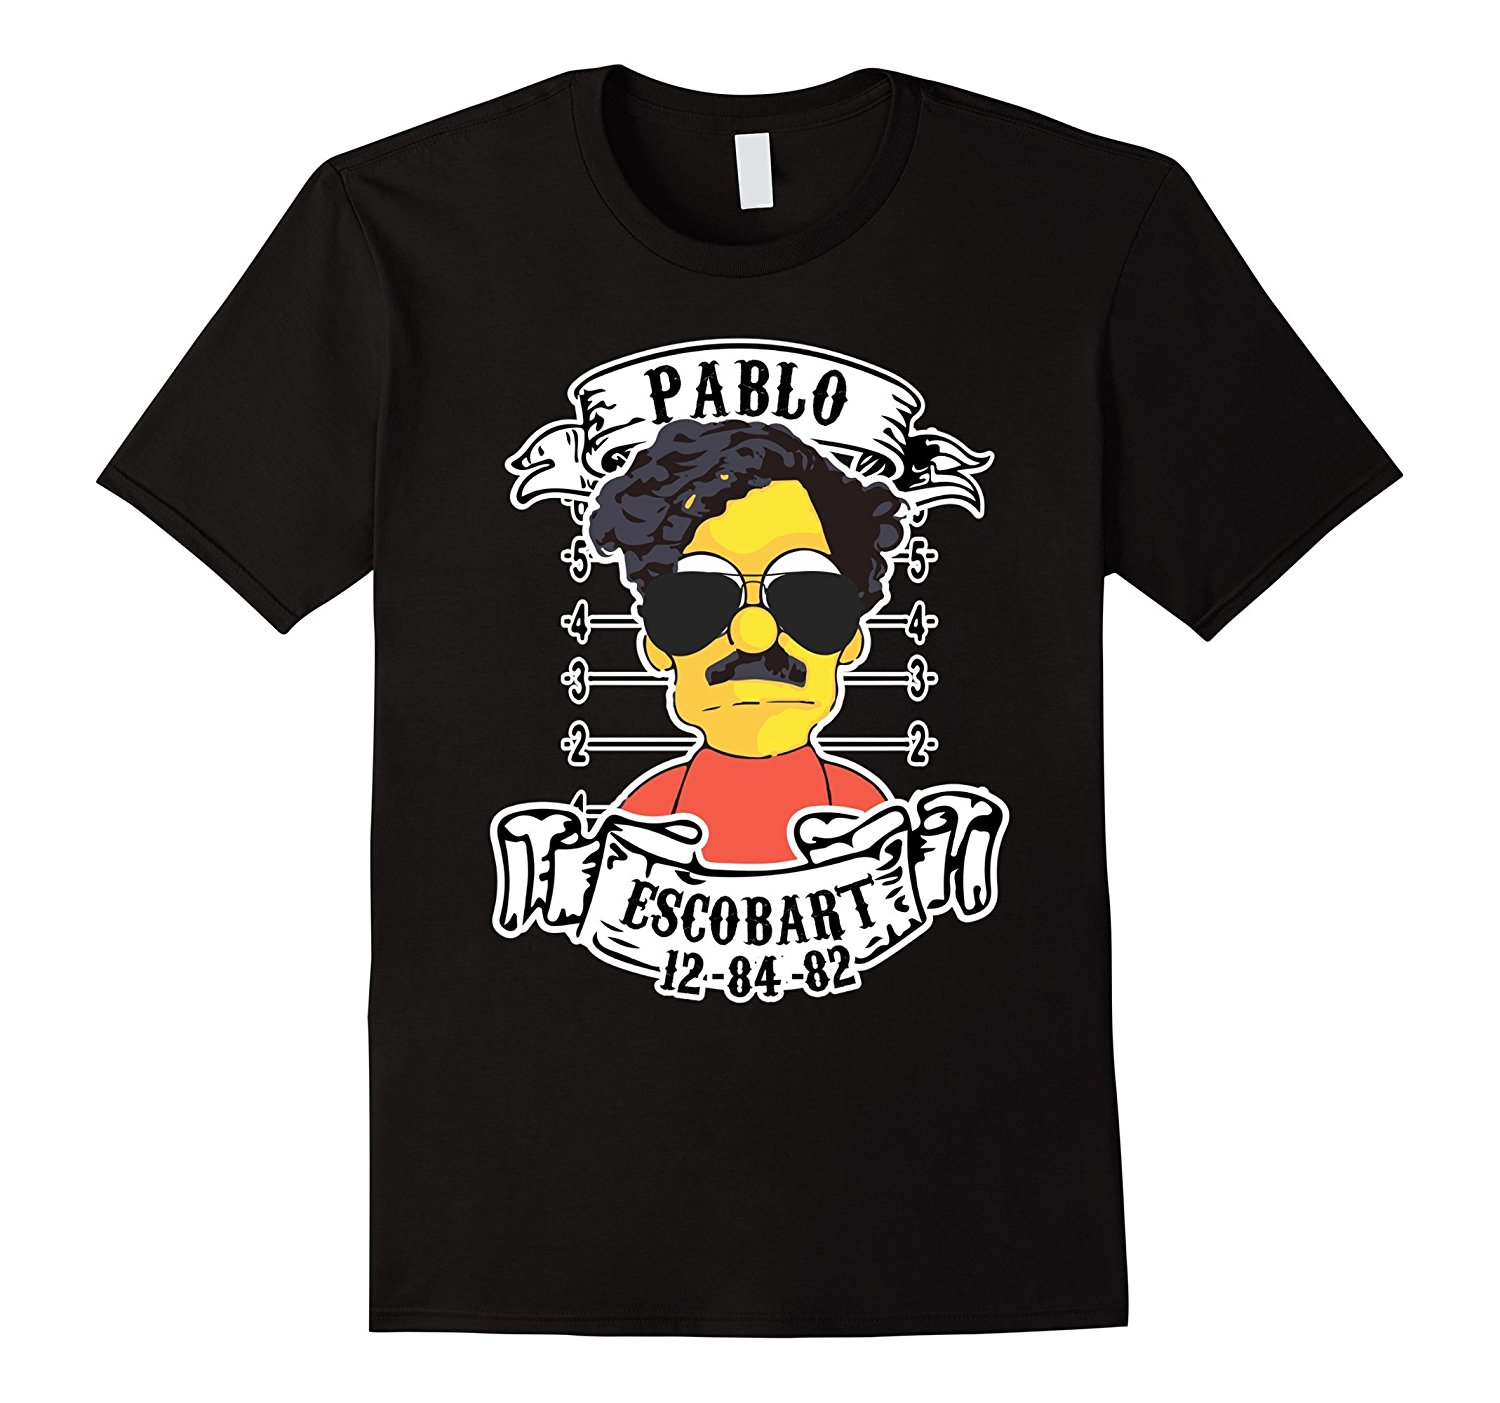 Escobart Merchandising Apparel Pablo Mugshot T-Shirt Short Sleeve Cotton T Shirts Man Clothing O-Neck Tee Shirt